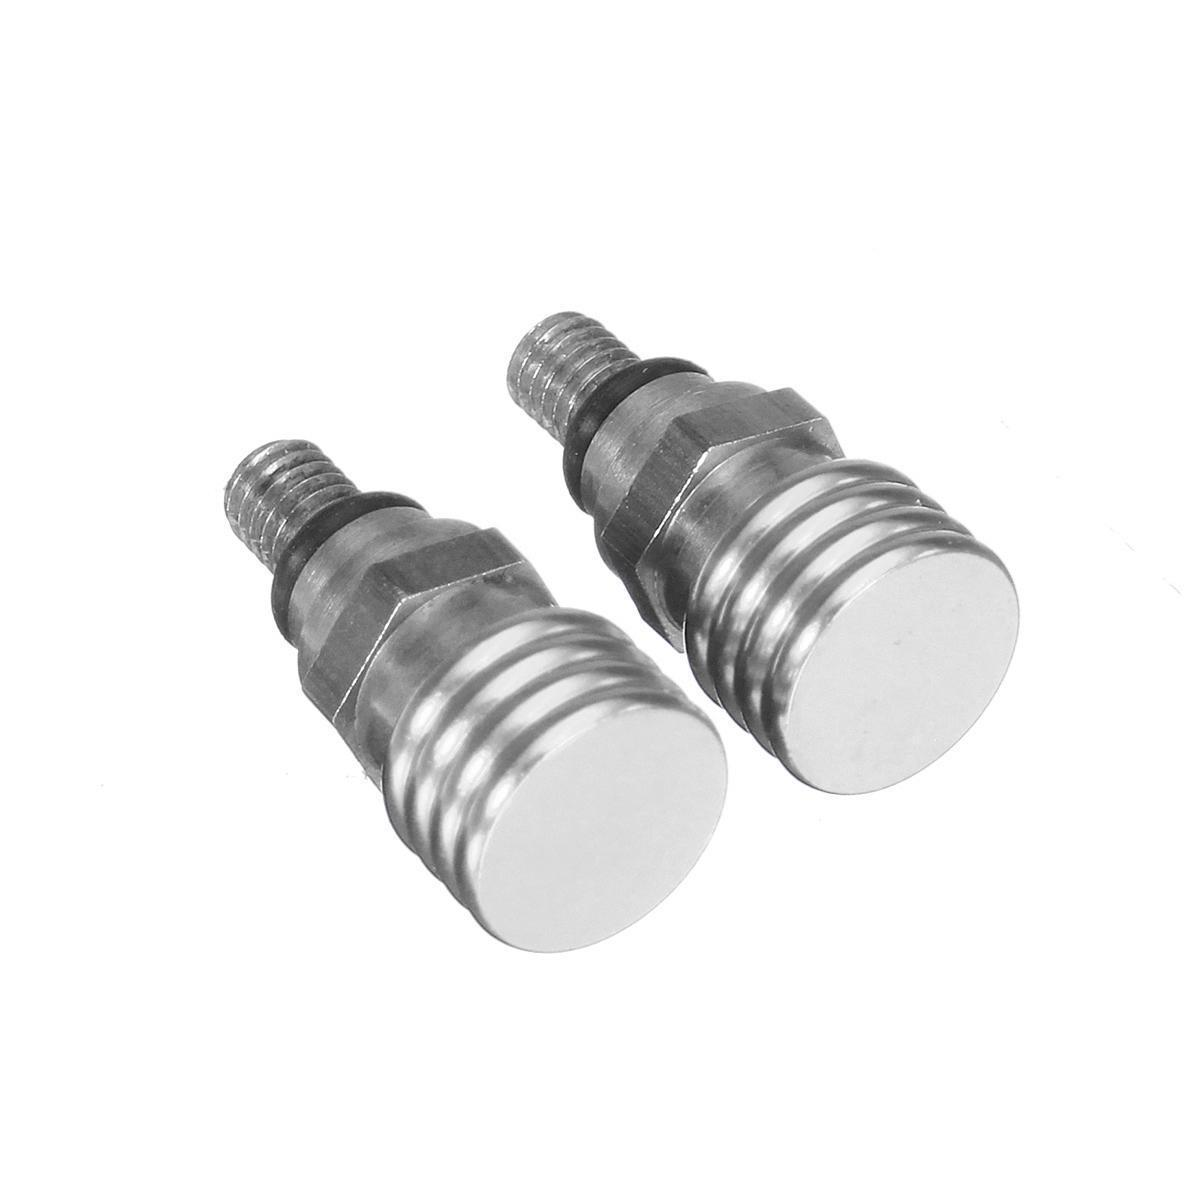 M4x0 7mm Fork Bleeders Valves Screw For Enduro KTM Off Road HUSKY WP  Marzocchi Silver